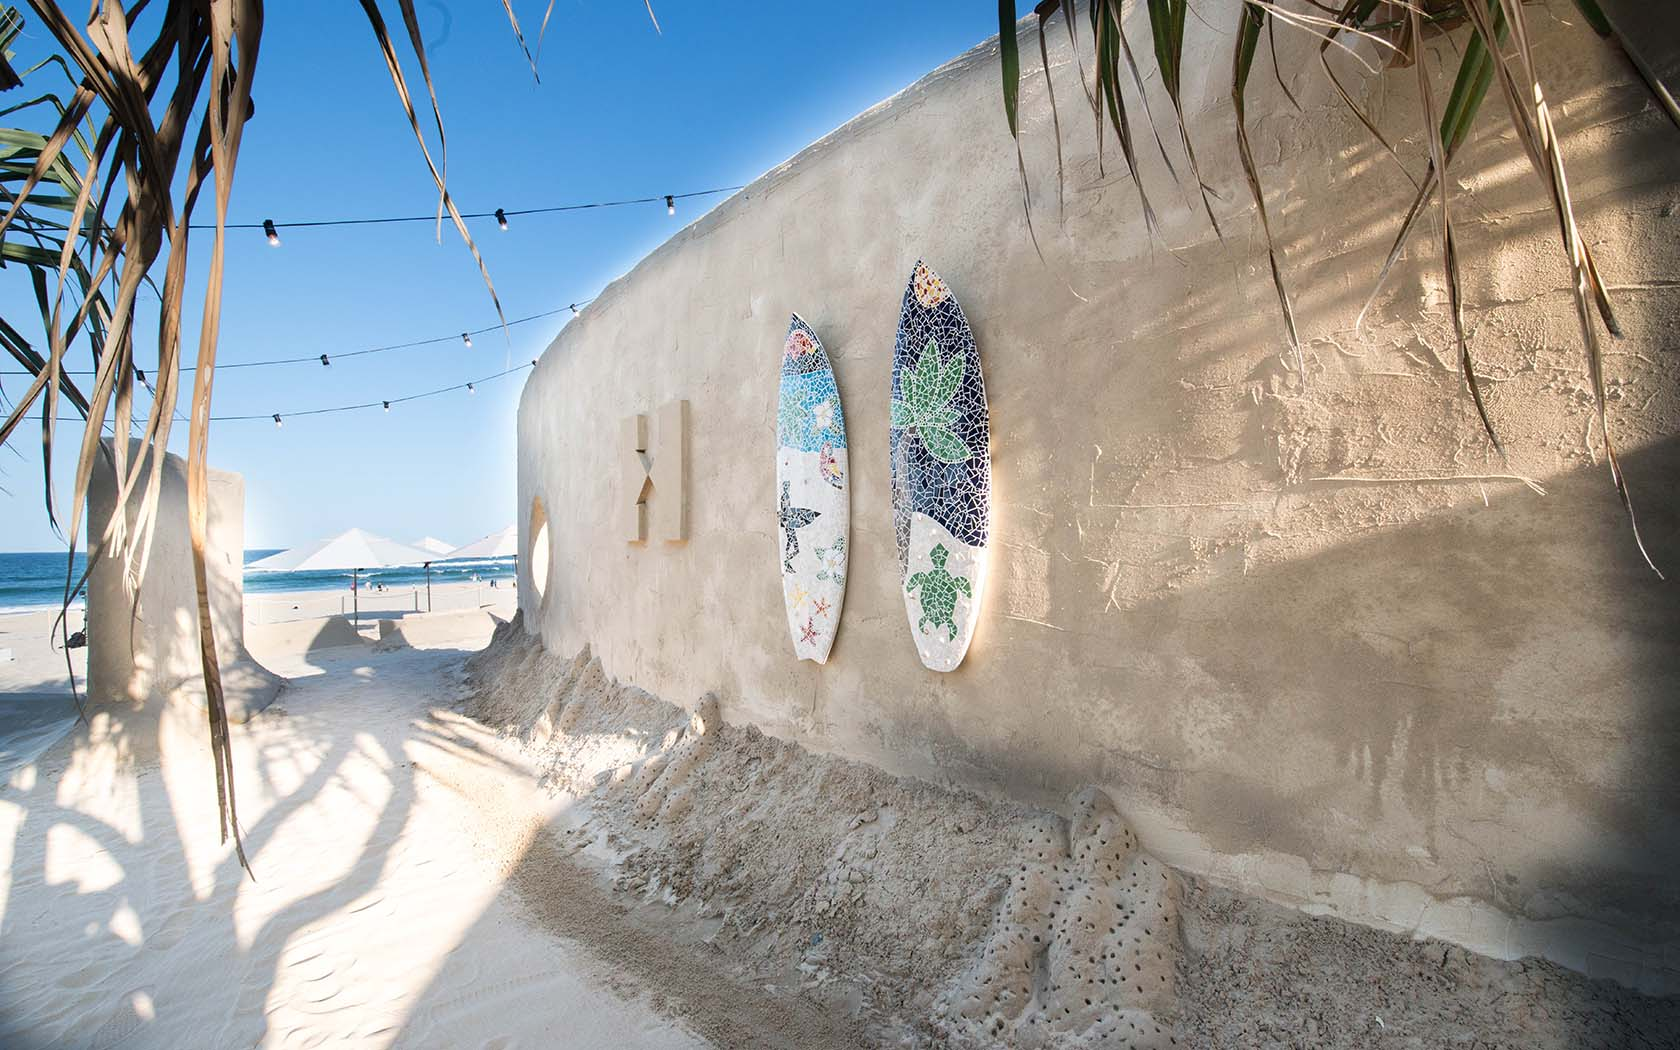 Rooms: The World's First Sand Hostel Opened On The Gold Coast Today